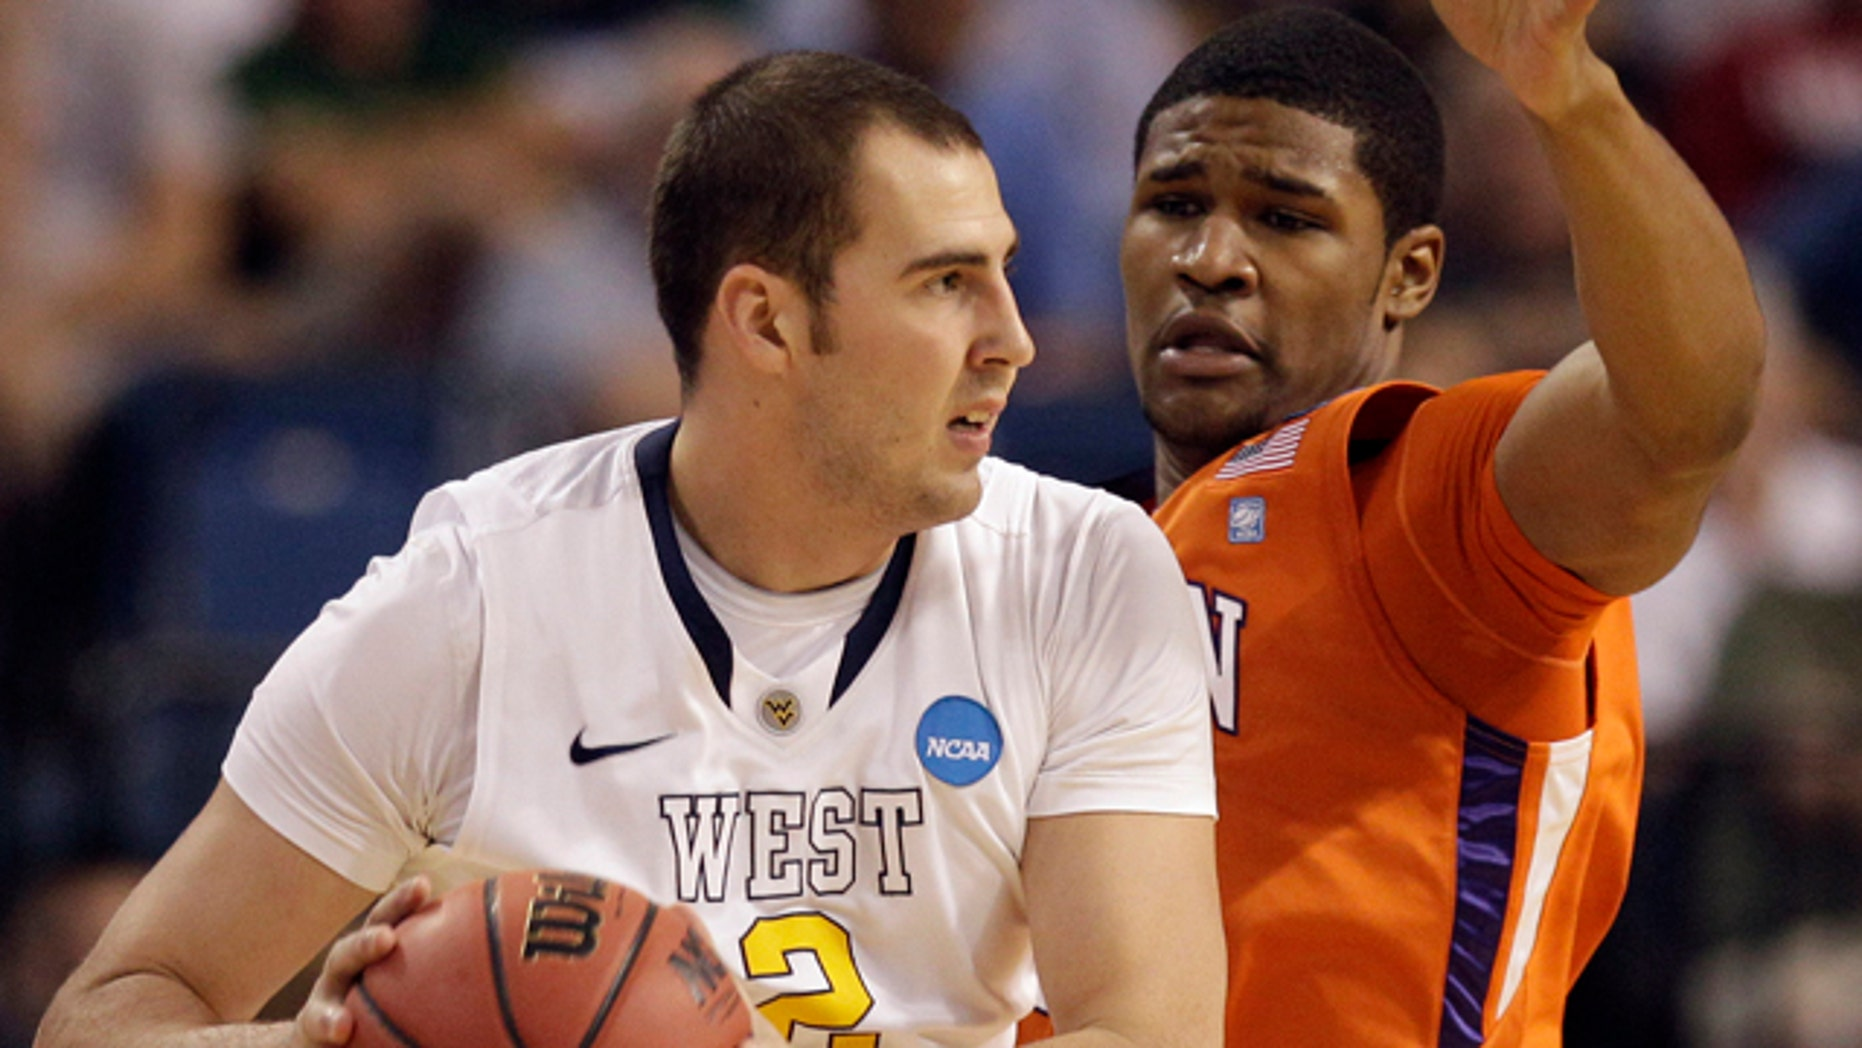 March 17: Clemson's Devin Booker (31) defends as West Virginia's Cam Thoroughman (2) attempts to pass during an East regional second round NCAA  tournament college basketball game in Tampa, Fla.